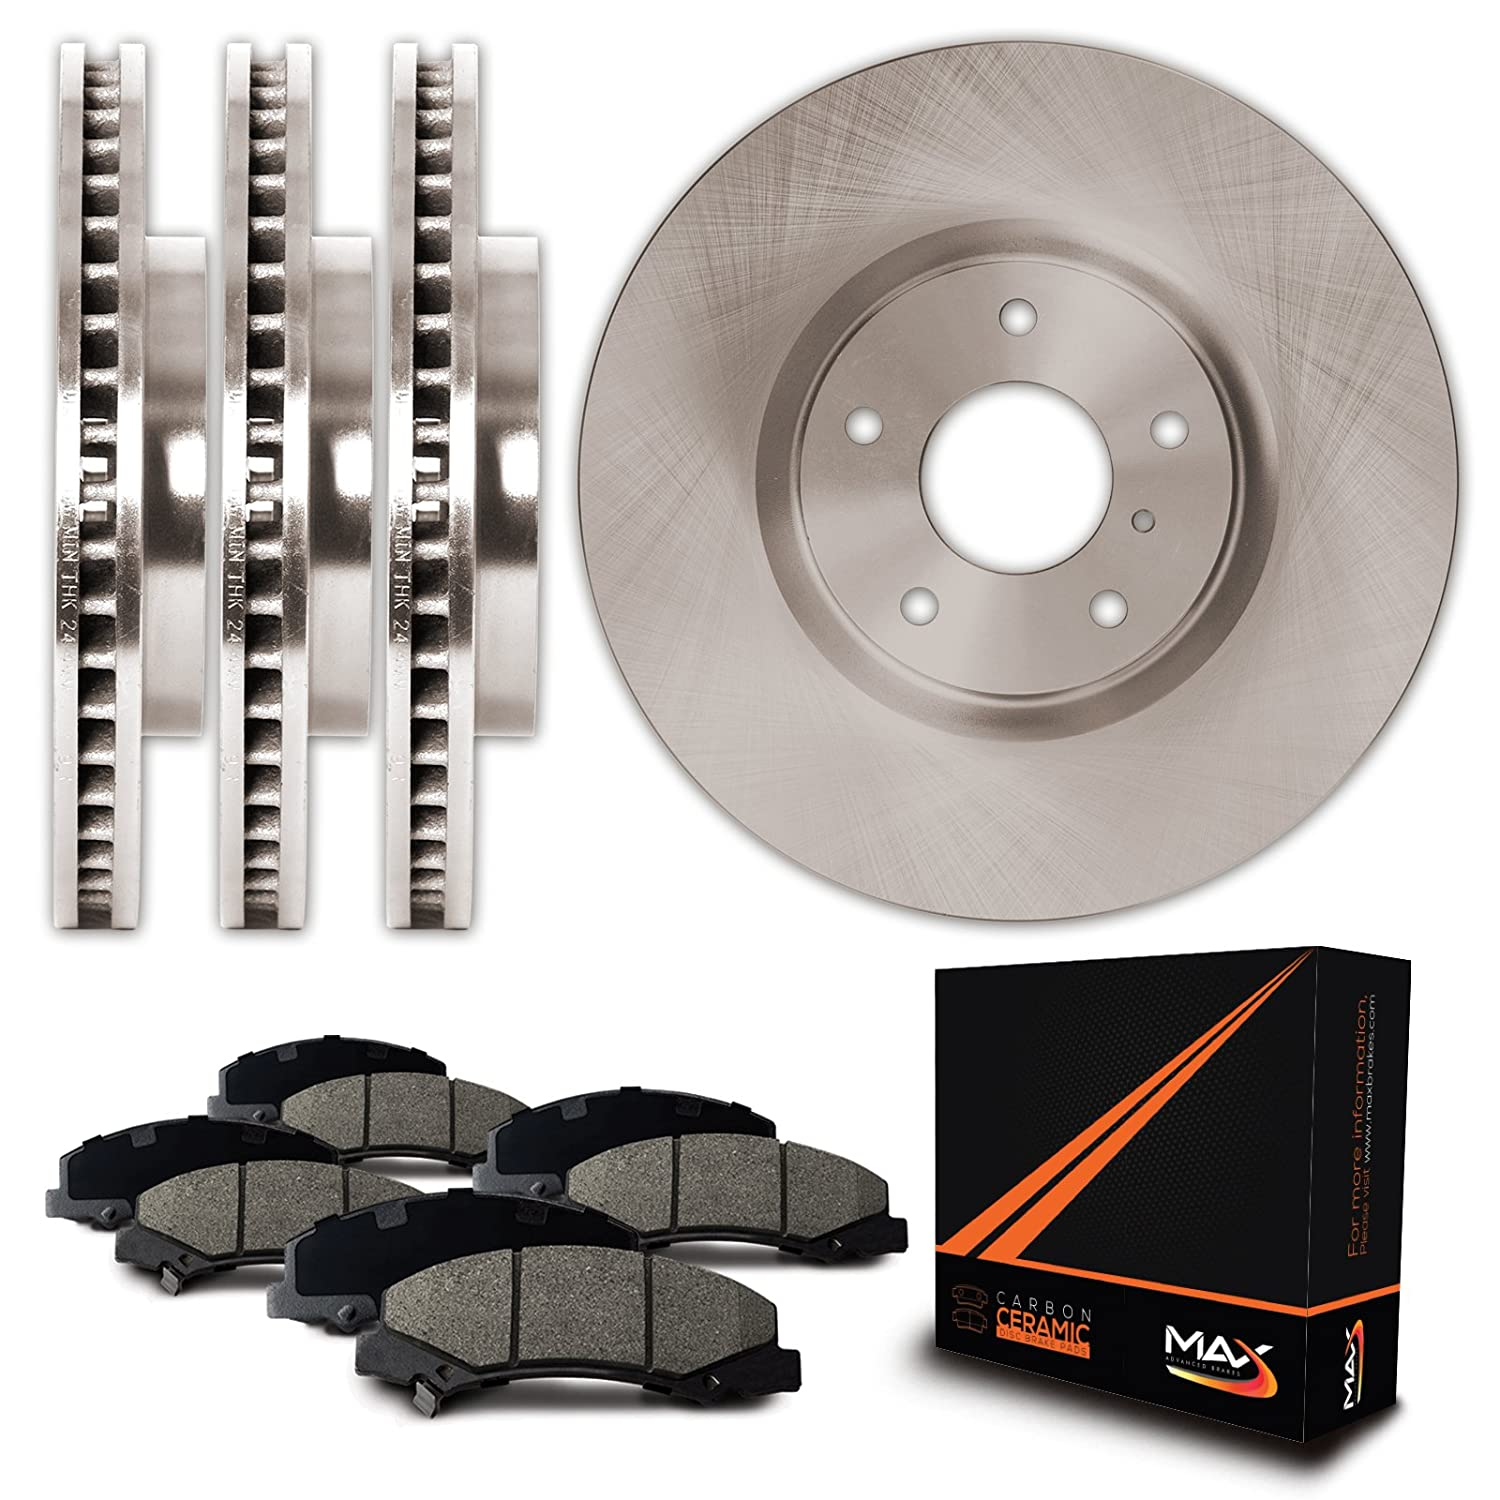 Max Brakes Front + Rear OE Series Rotors w/Ceramic Pads Premium Brake Kit KT005043 | Fits: 2003 03 Honda Accord Sedan 4 Cylinder US Models Max Advanced Brakes